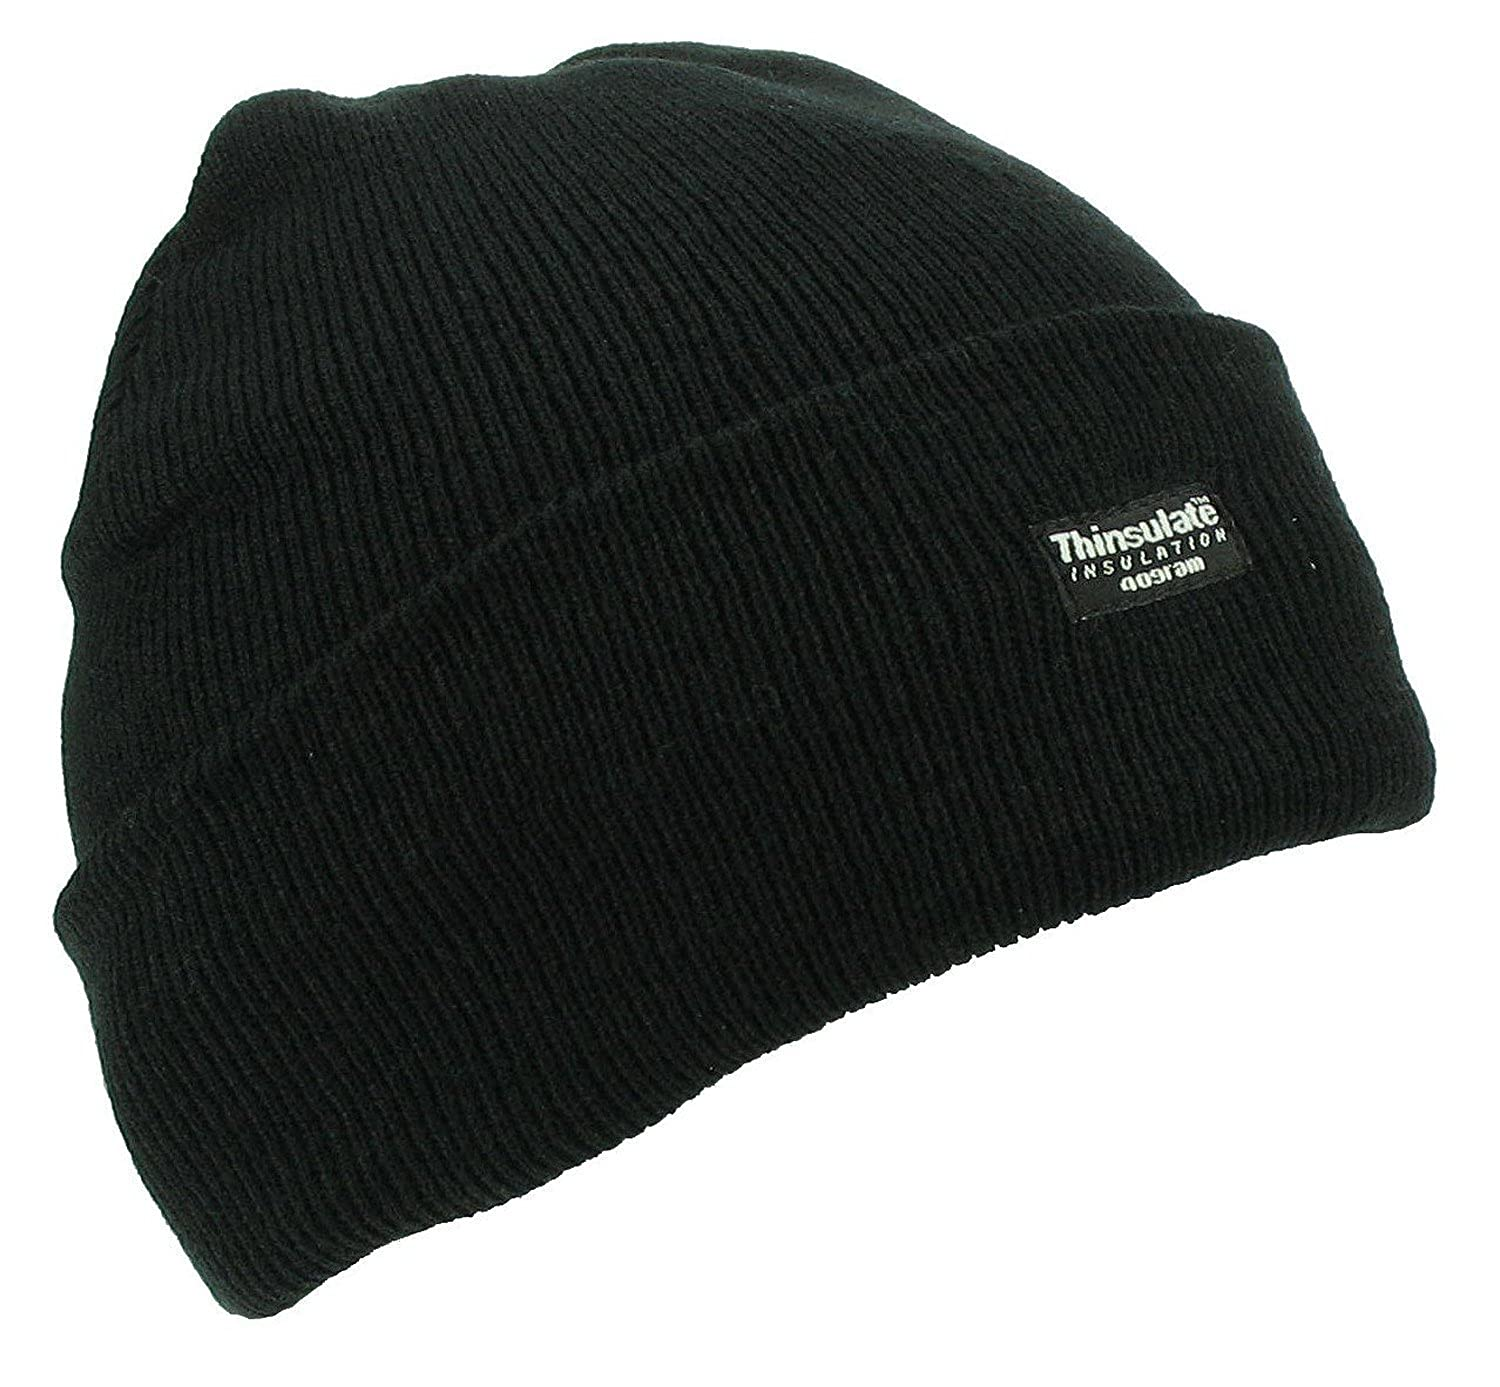 d5351310789 Mens Adult Winter Thermal Thinsulate Knitted Black Beanie Hat One Size at  Amazon Men s Clothing store